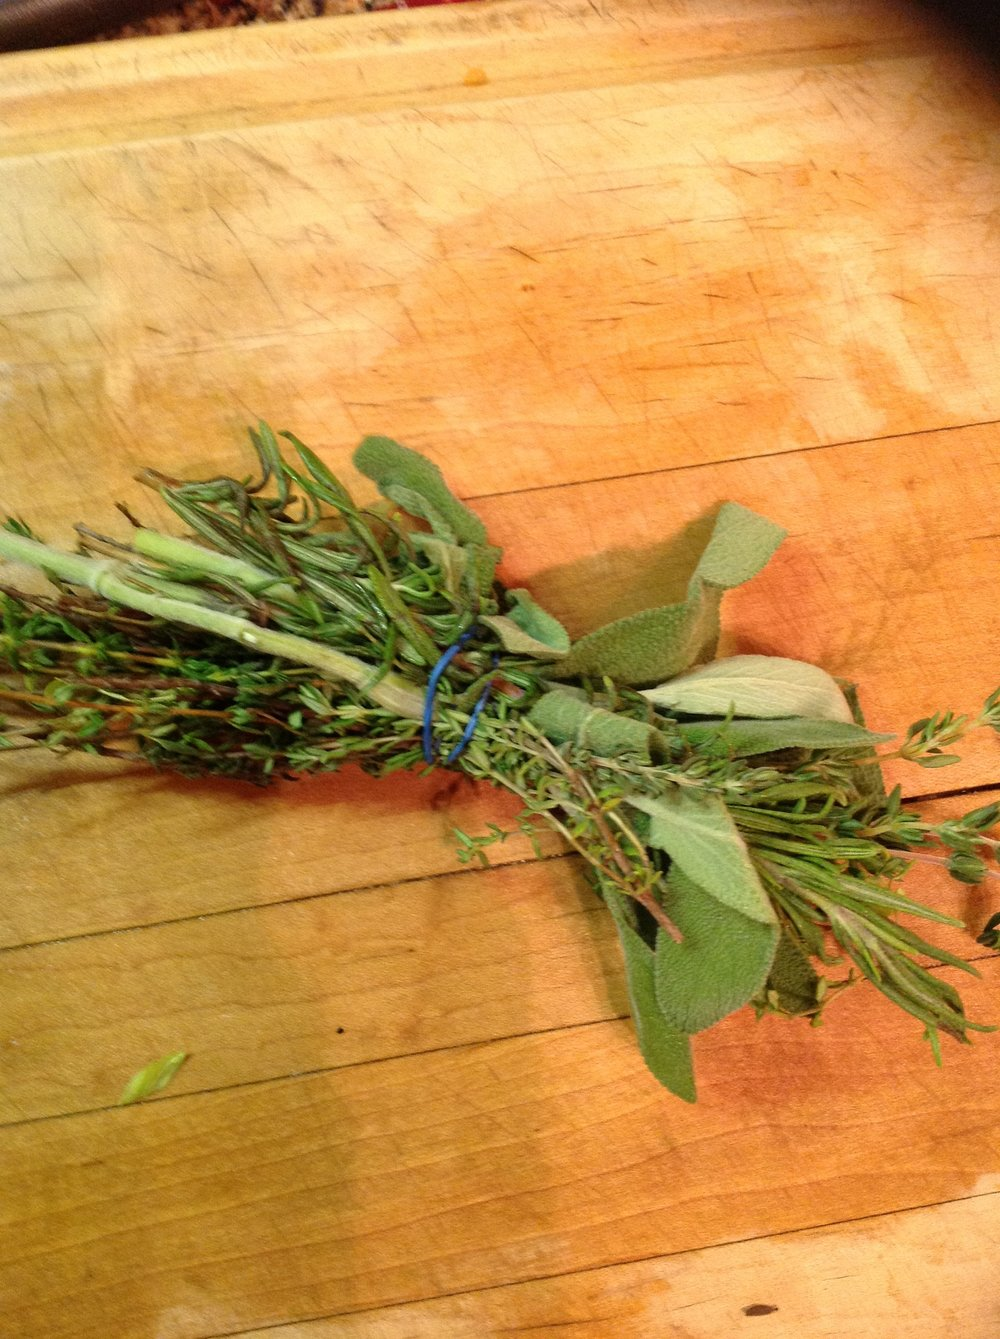 """Chef's Healthy Tip: For traditional flavor, a Bouquet Garni """"little bundle"""" of sage, rosemary, and thyme can be added to grains during the cooking"""